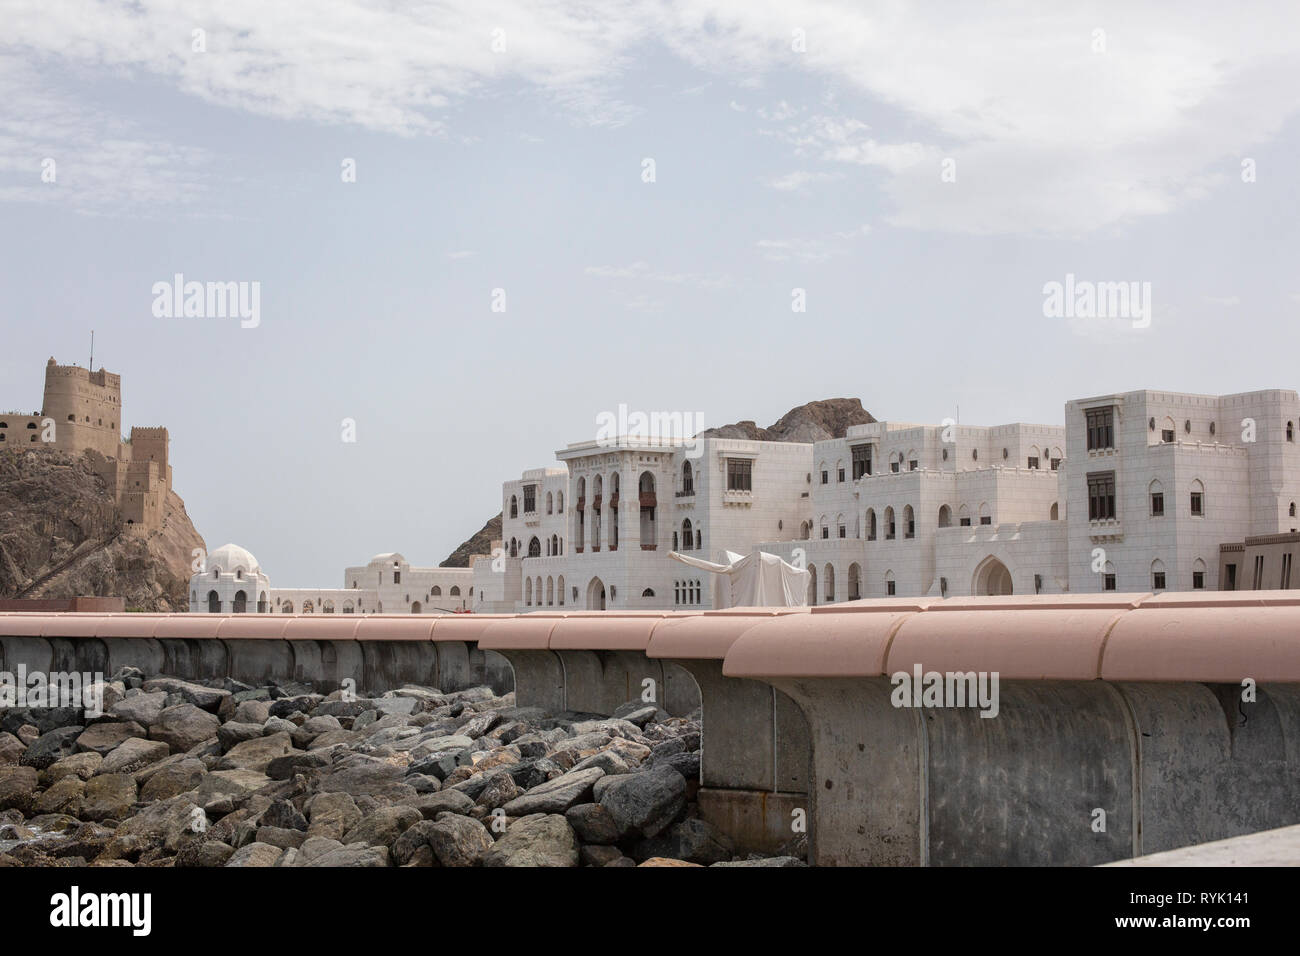 Sultan's palace and the portuguese fort, dating 17th century in old Muscat Stock Photo